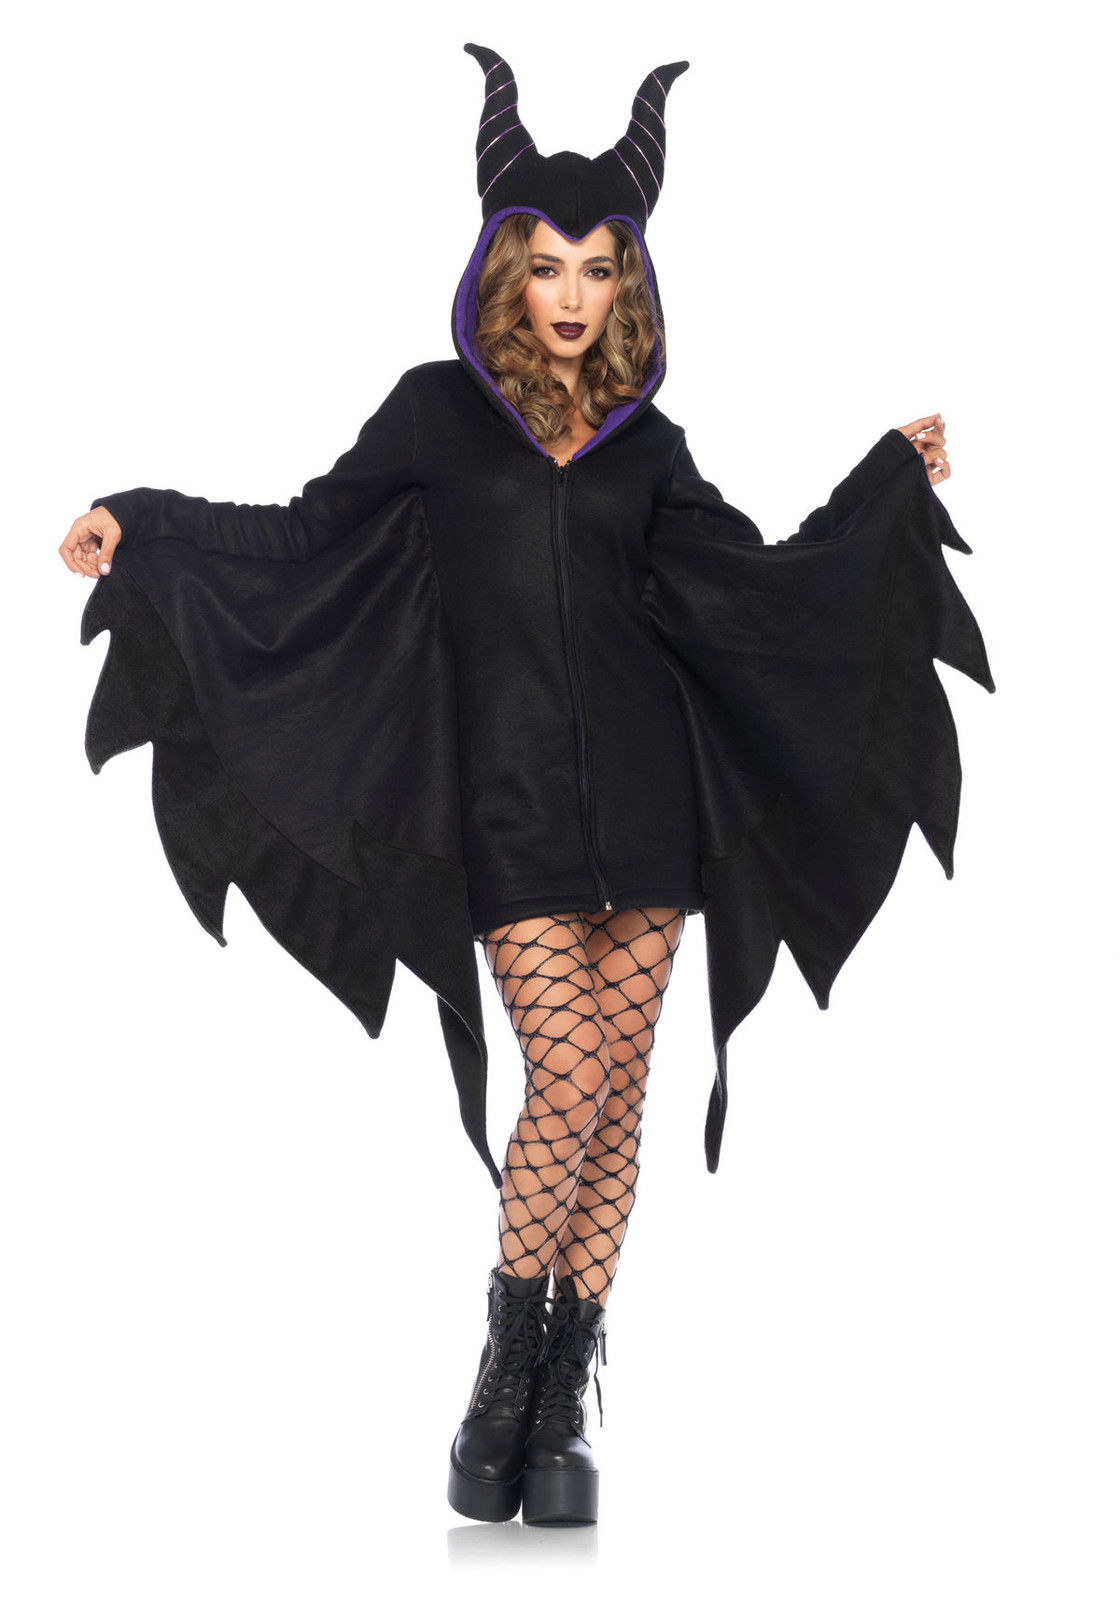 Maleficent Costumes For Halloween | Maleficent Sleeping Beauty Deluxe Black Gown Dress Horns Cozy